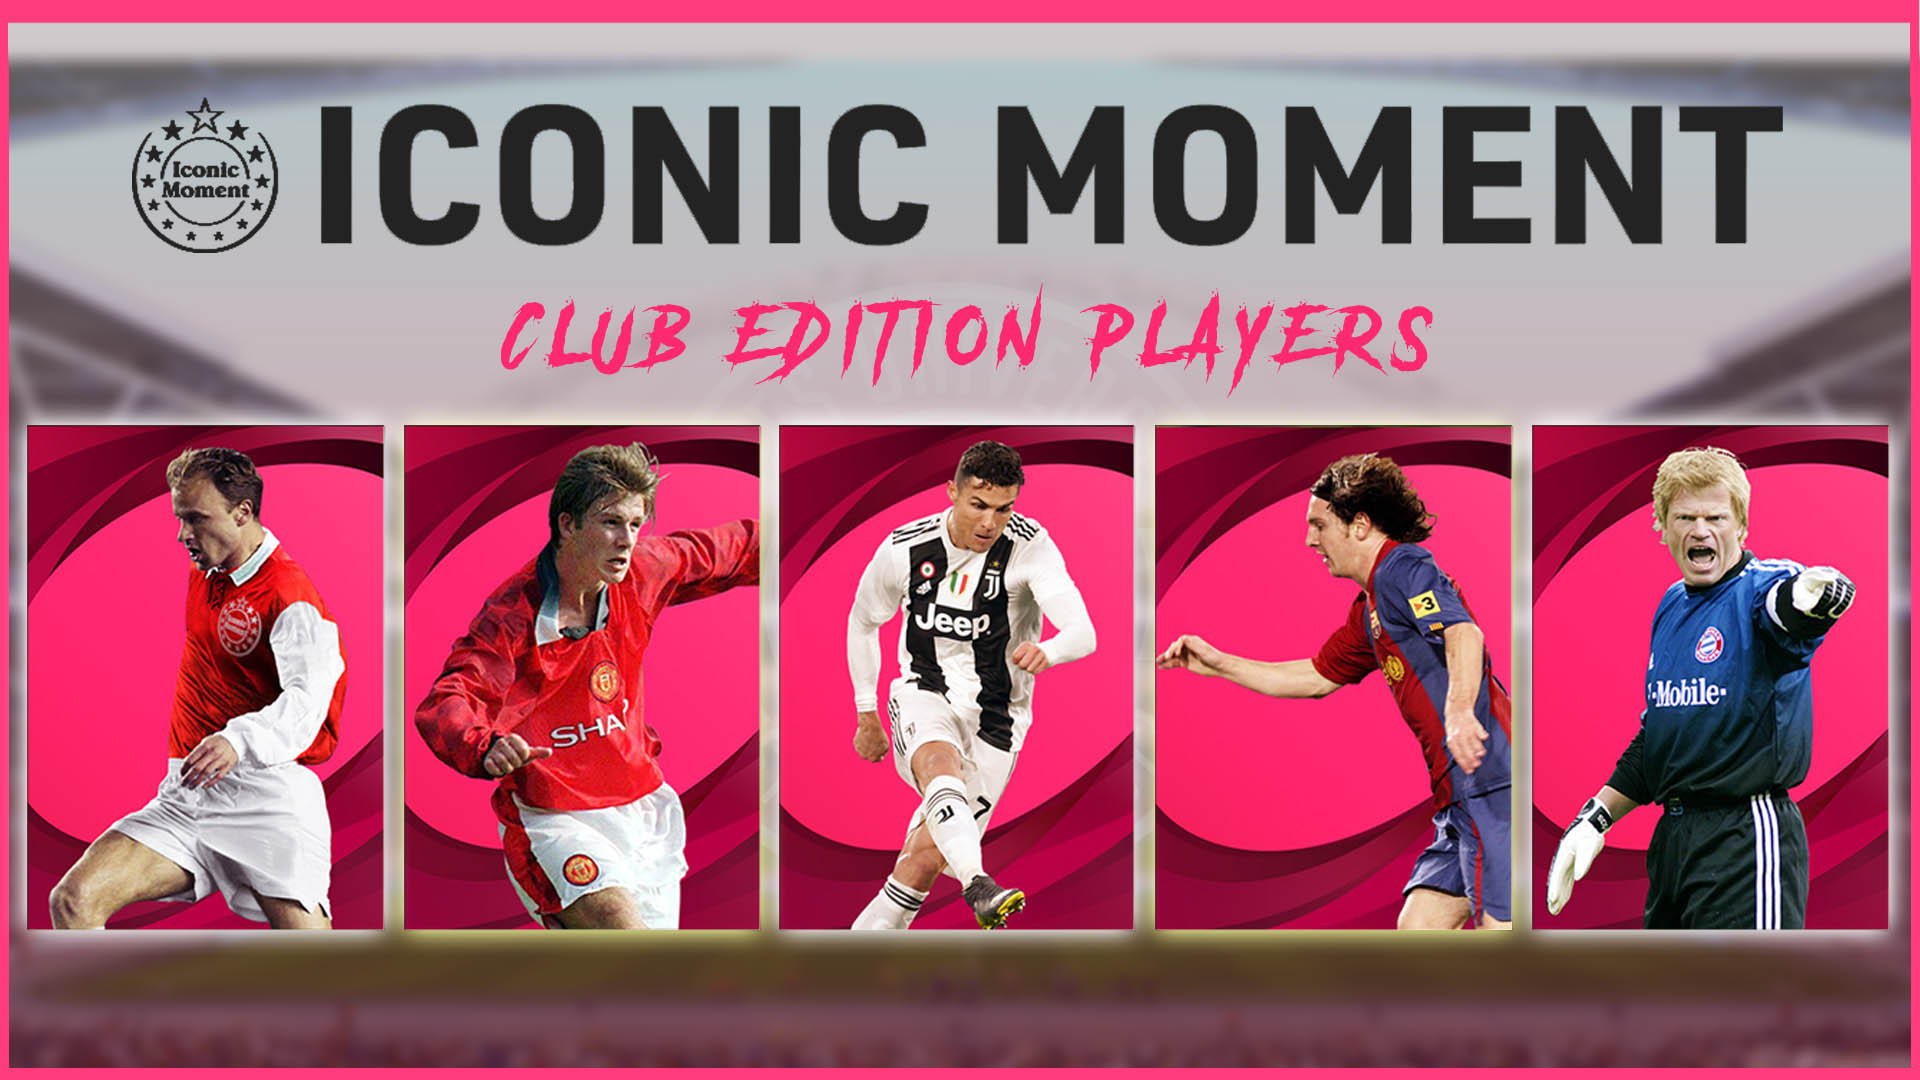 PES 2021 Iconc Moments Players Club Editions